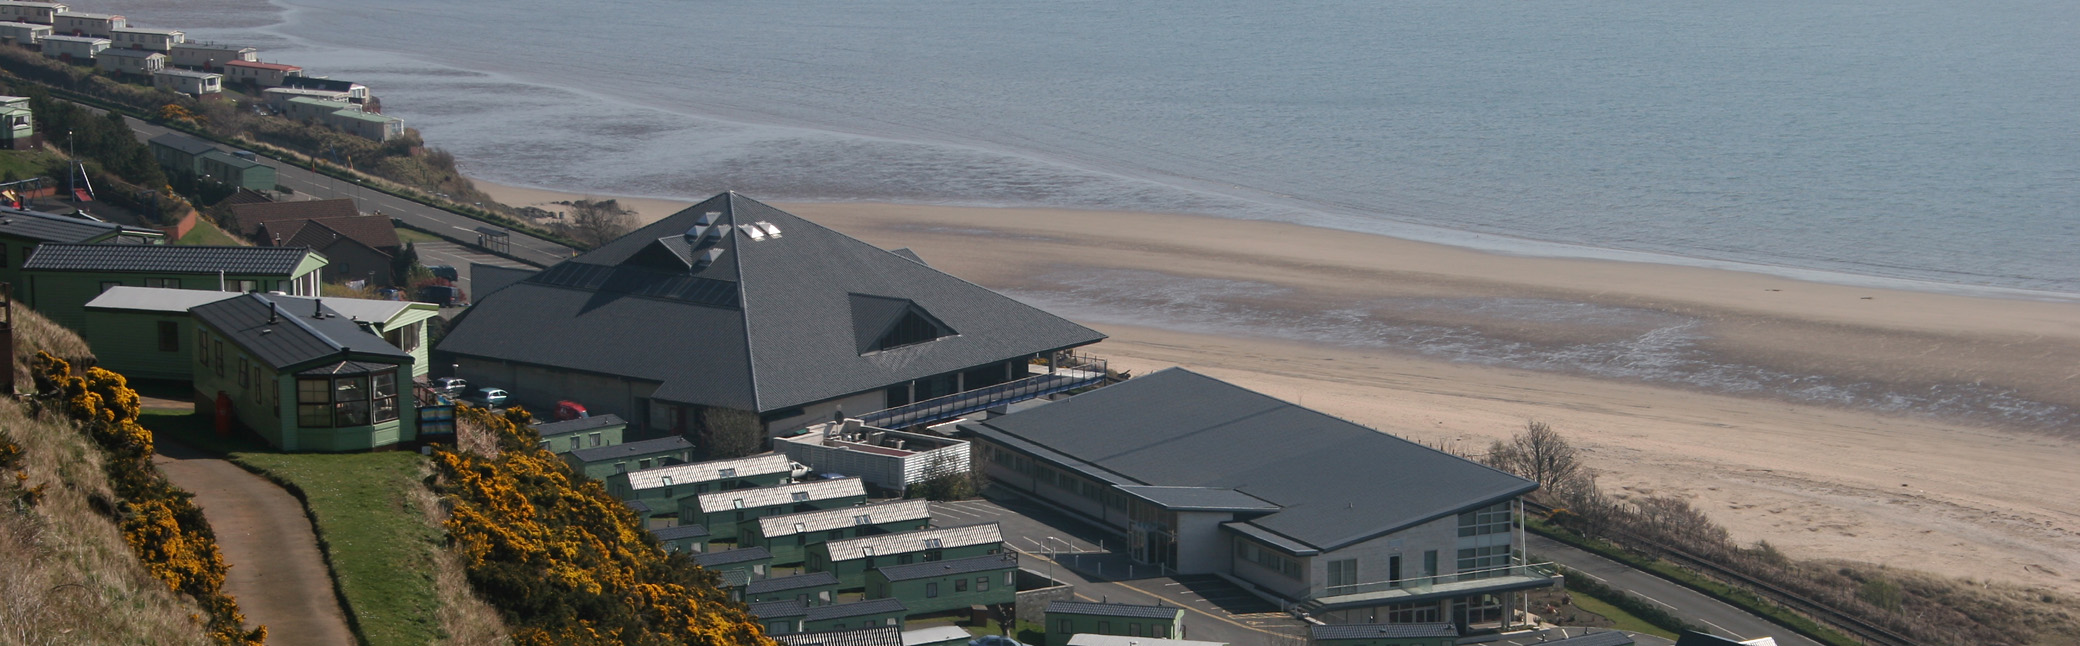 Looking down on the Bay Hotel and Leisure Centre.